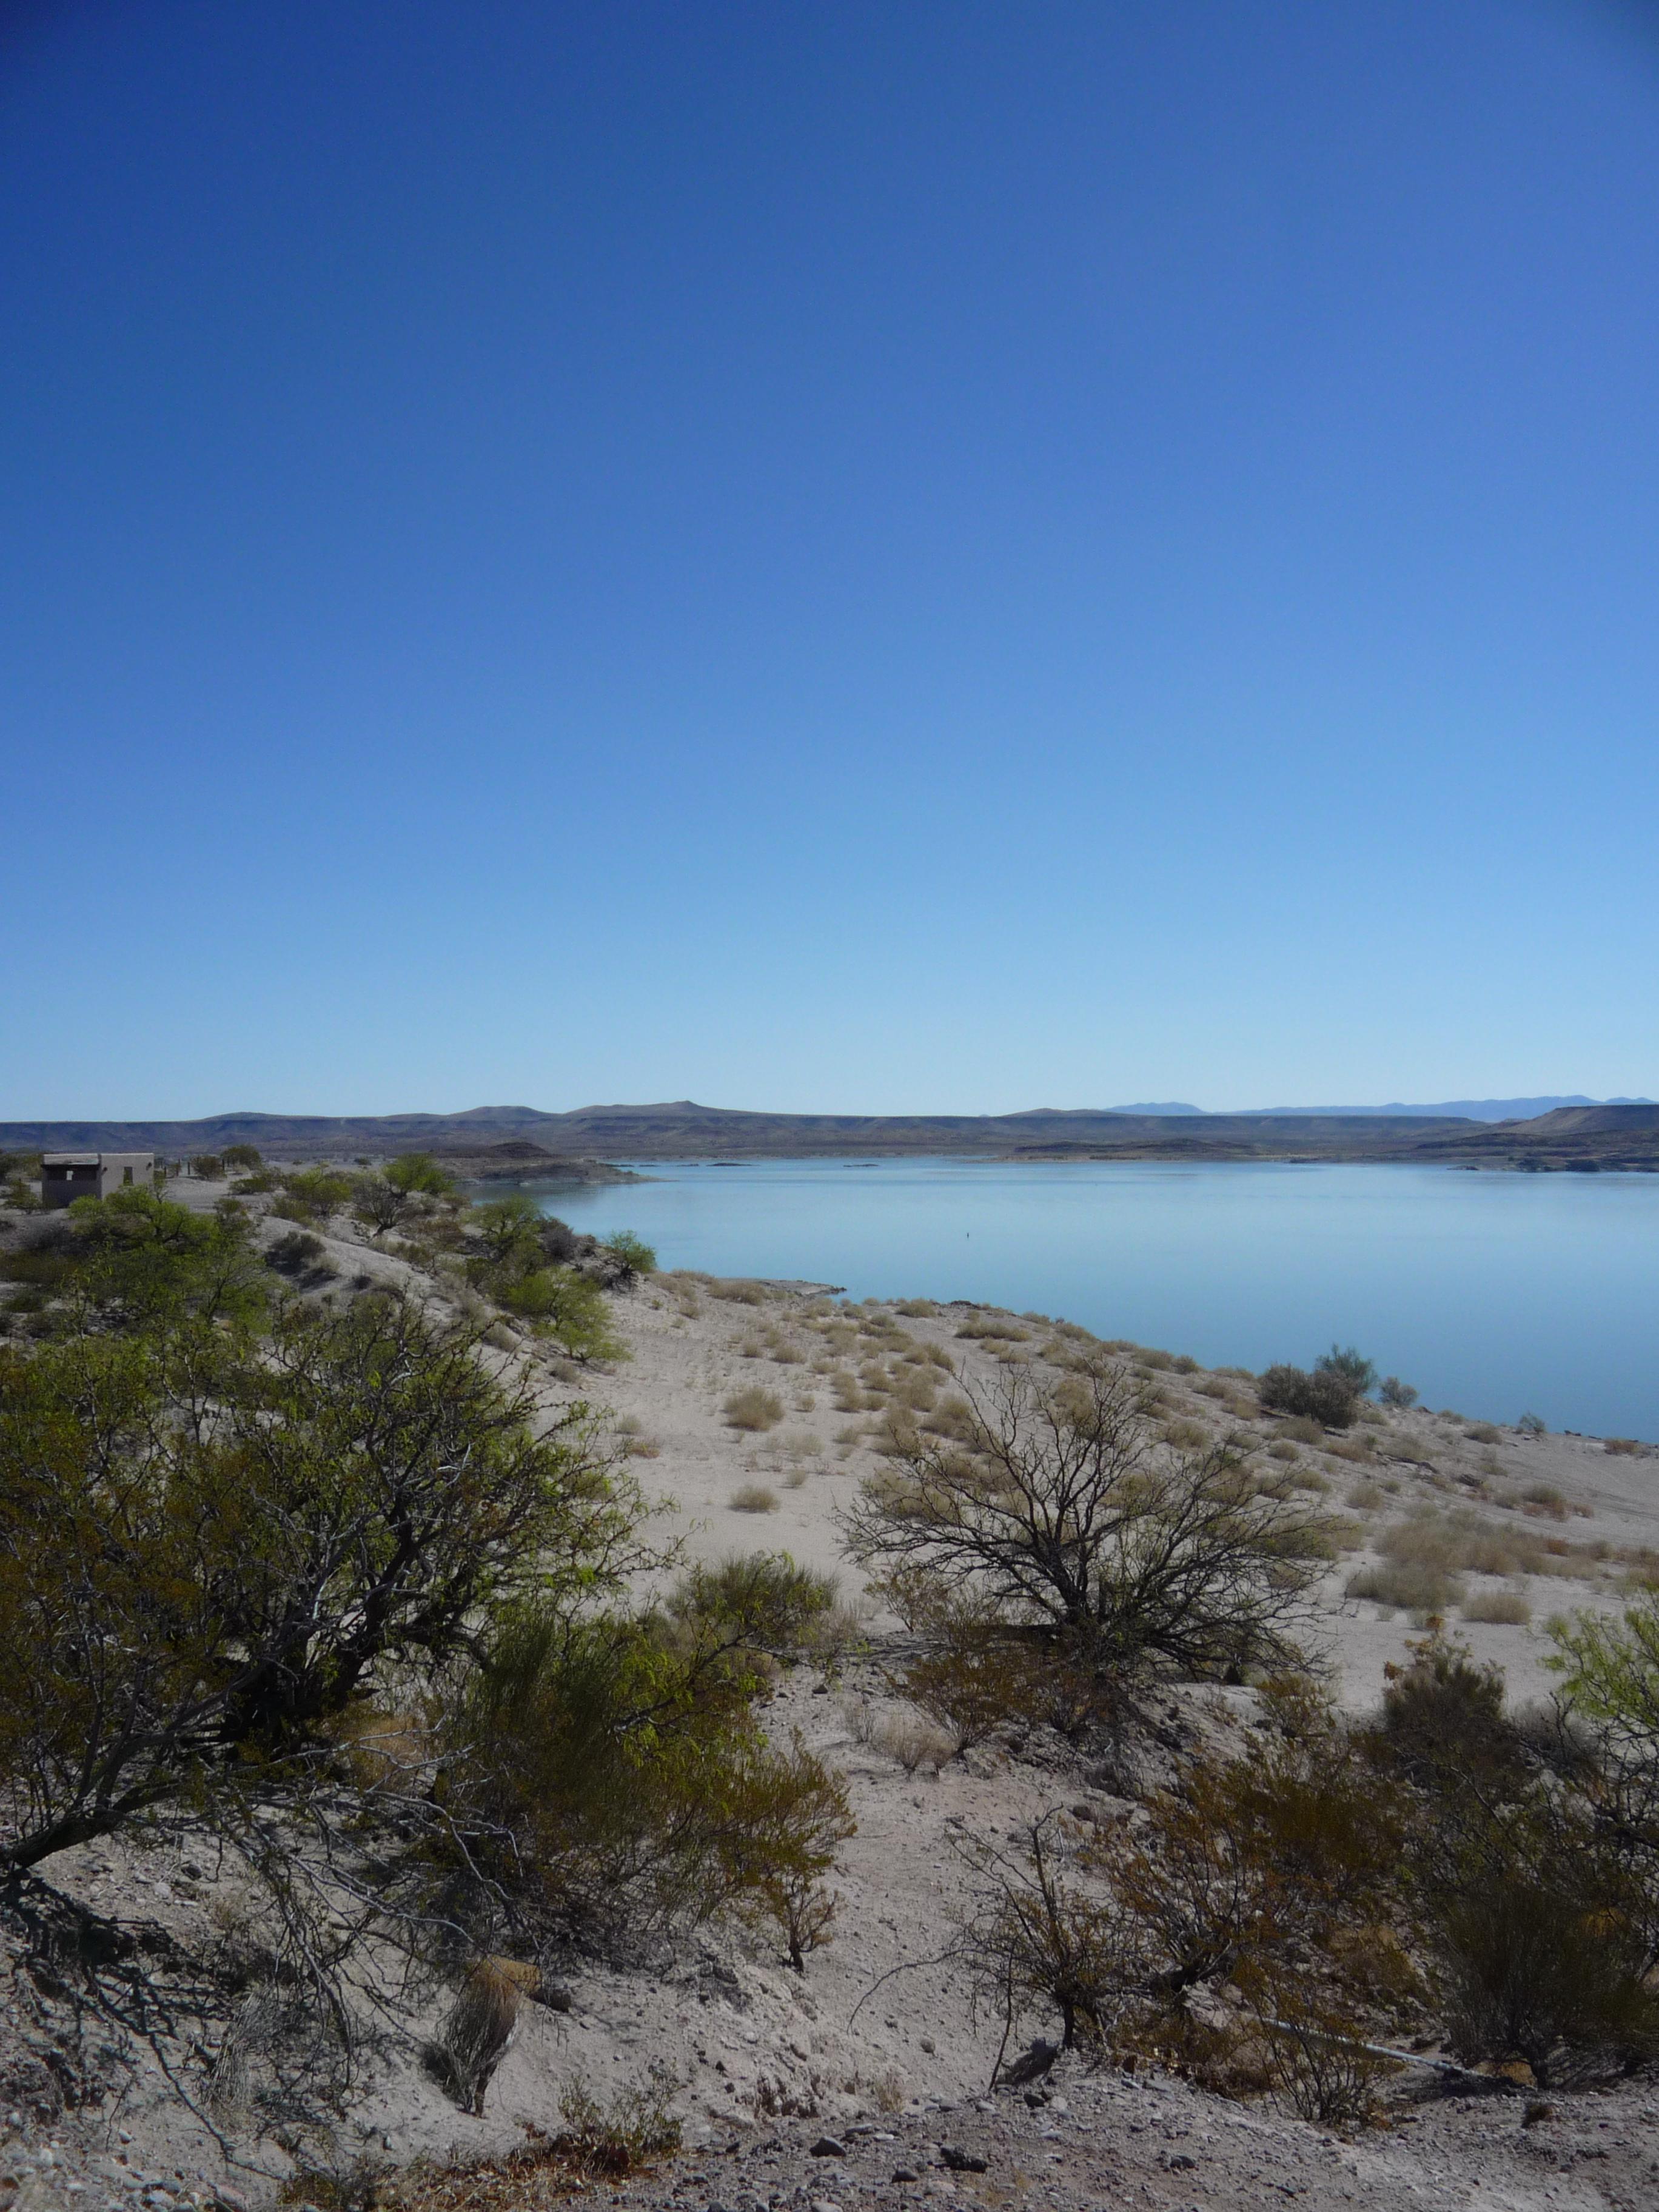 elephant butte dating A few nice sea floods images i found: elephant butte, canyonlands national park, moab, utah image by james_gordon_losangeles canyonlands national park is a us national park located in.